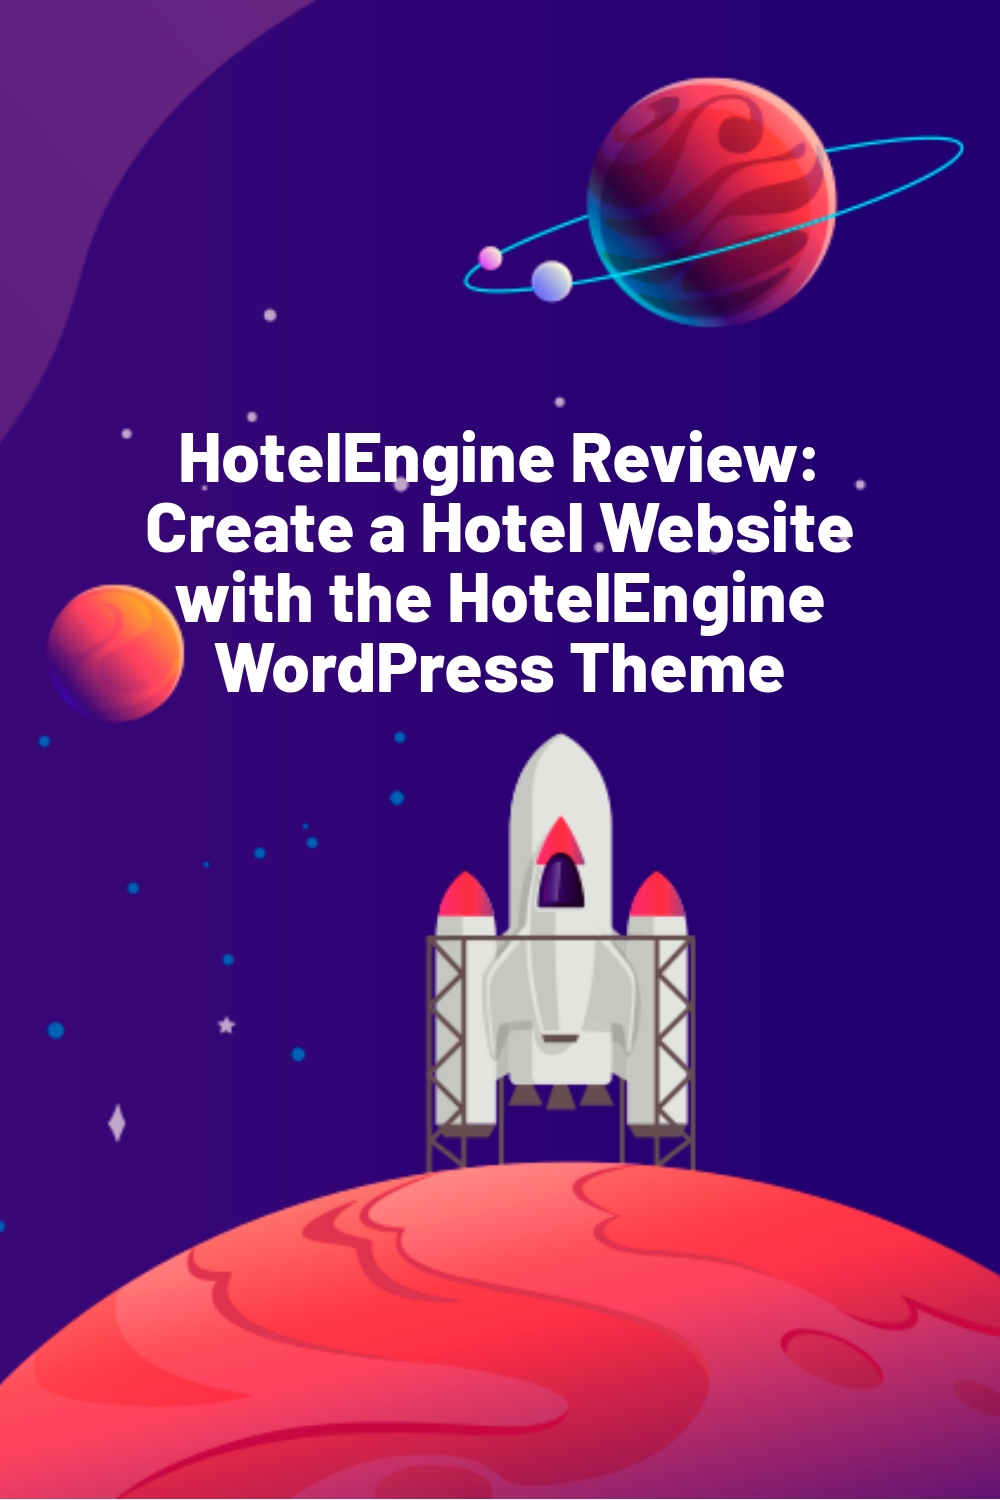 HotelEngine Review: Create a Hotel Website with the HotelEngine WordPress Theme